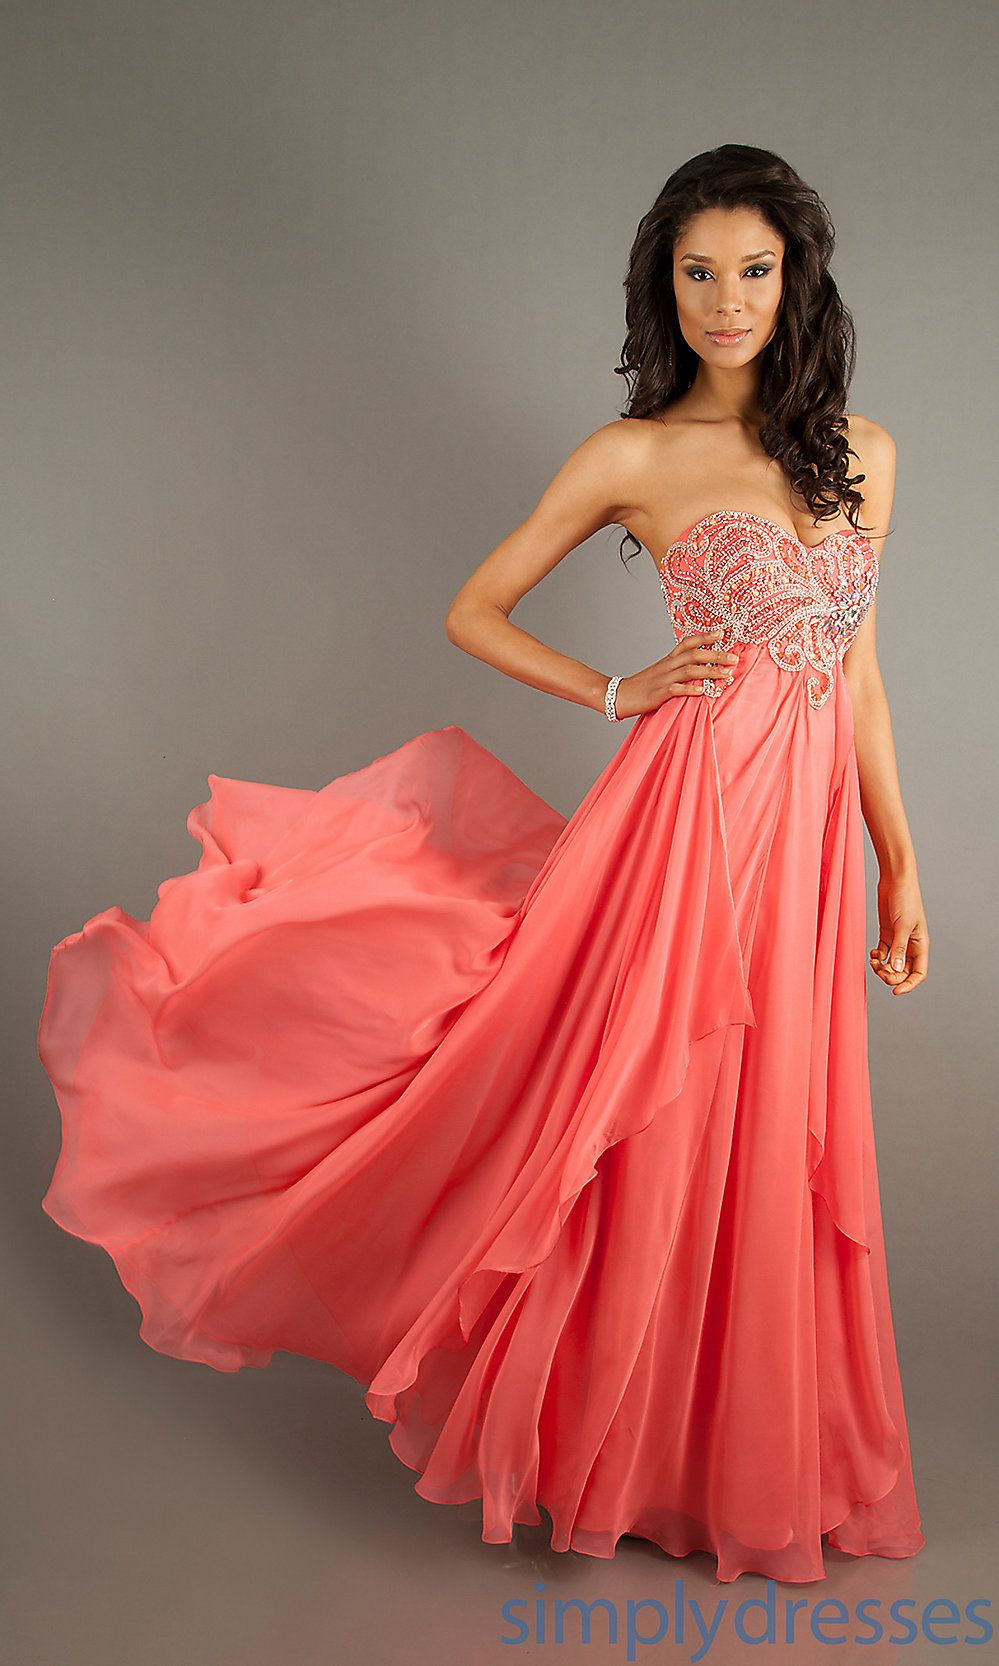 Beautiful color clothes pinterest strapless dress dress prom